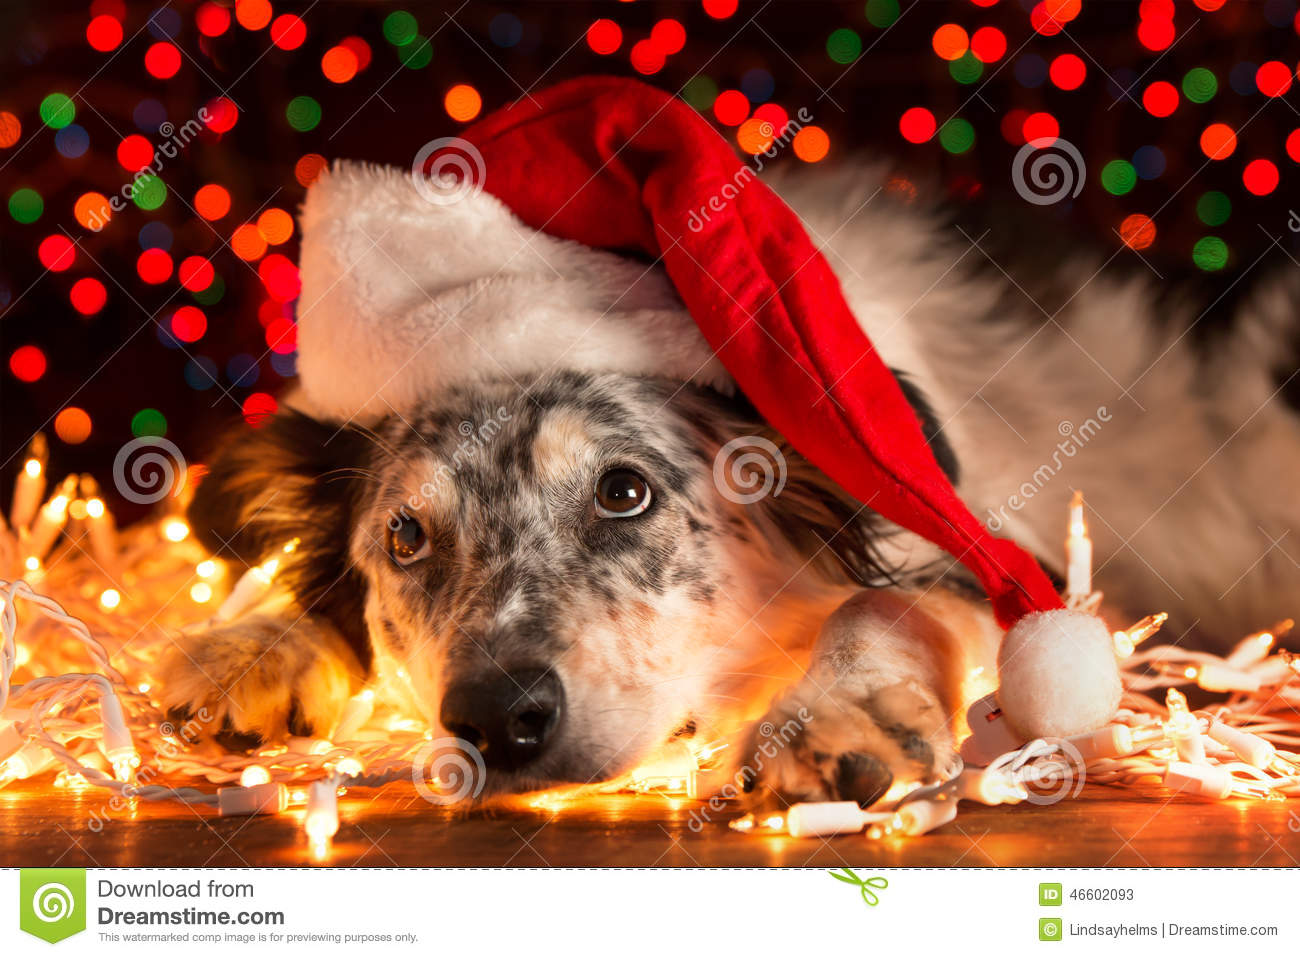 royalty free stock photo download dog wearing santa hat with christmas lights - Dog Christmas Lights